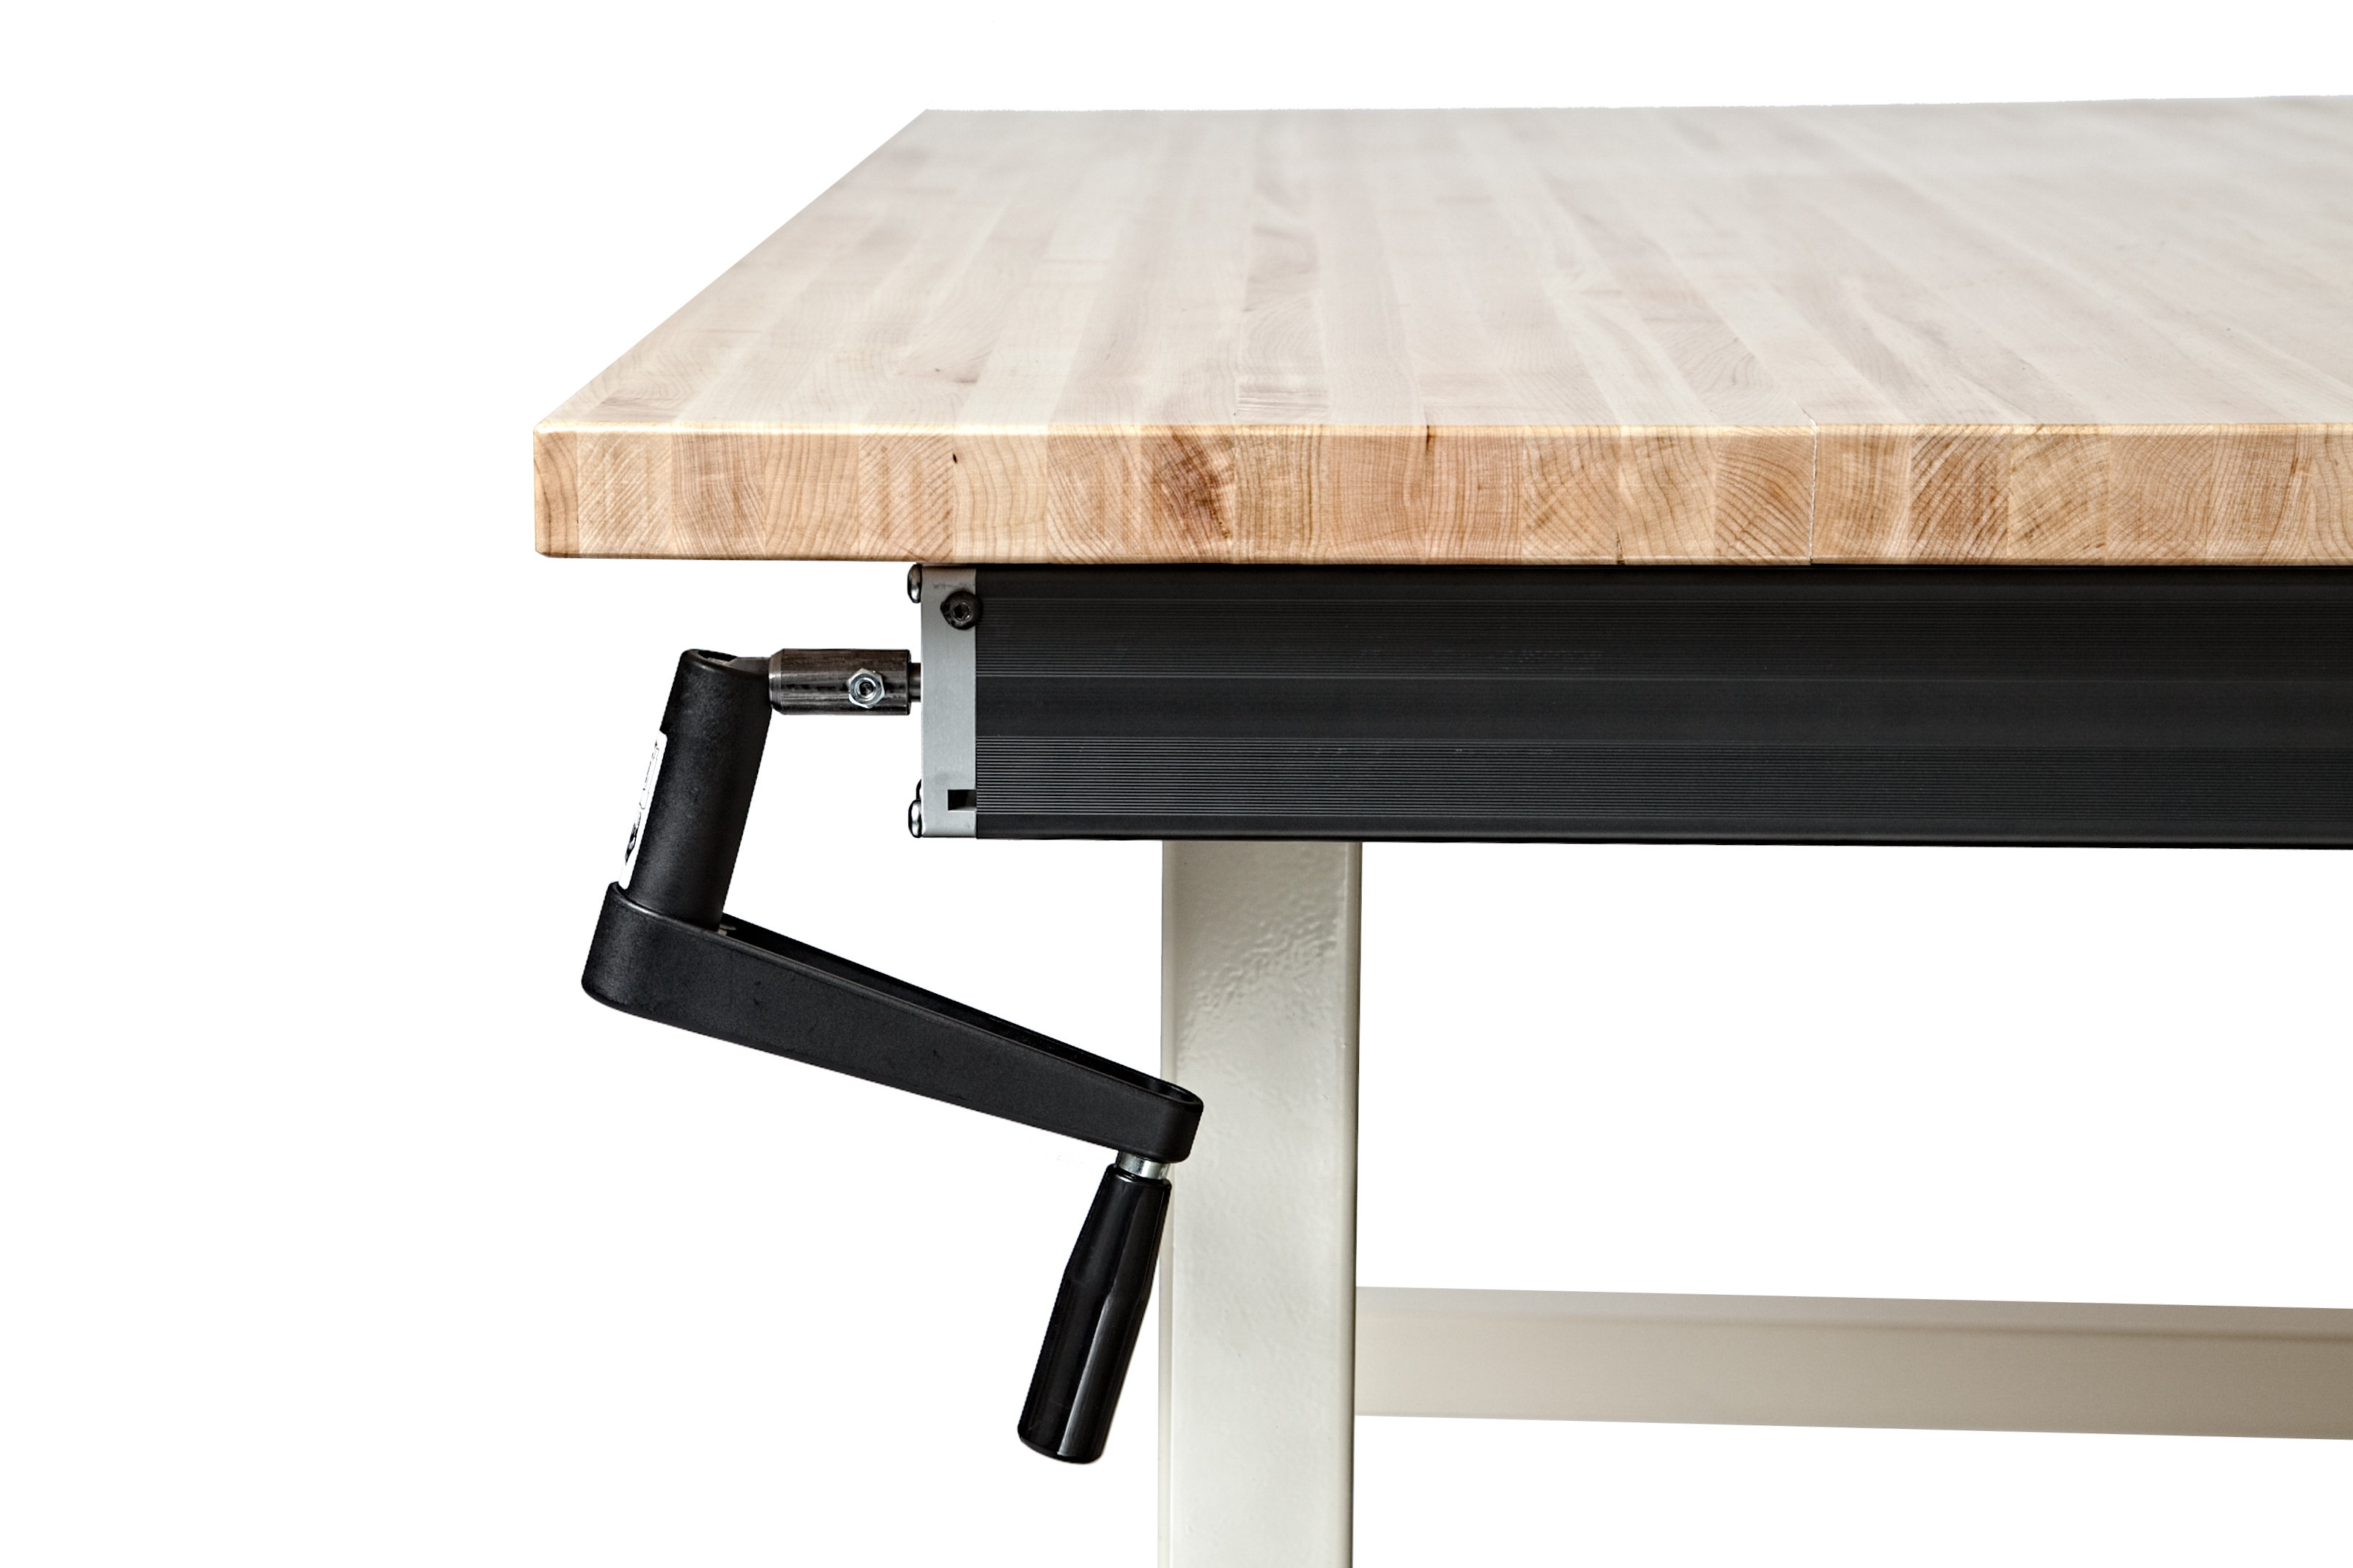 Work Bench Legs for Best Your Workspace Furniture Design: Sawhorse Table Legs | Standard Height For A Workbench | Work Bench Legs